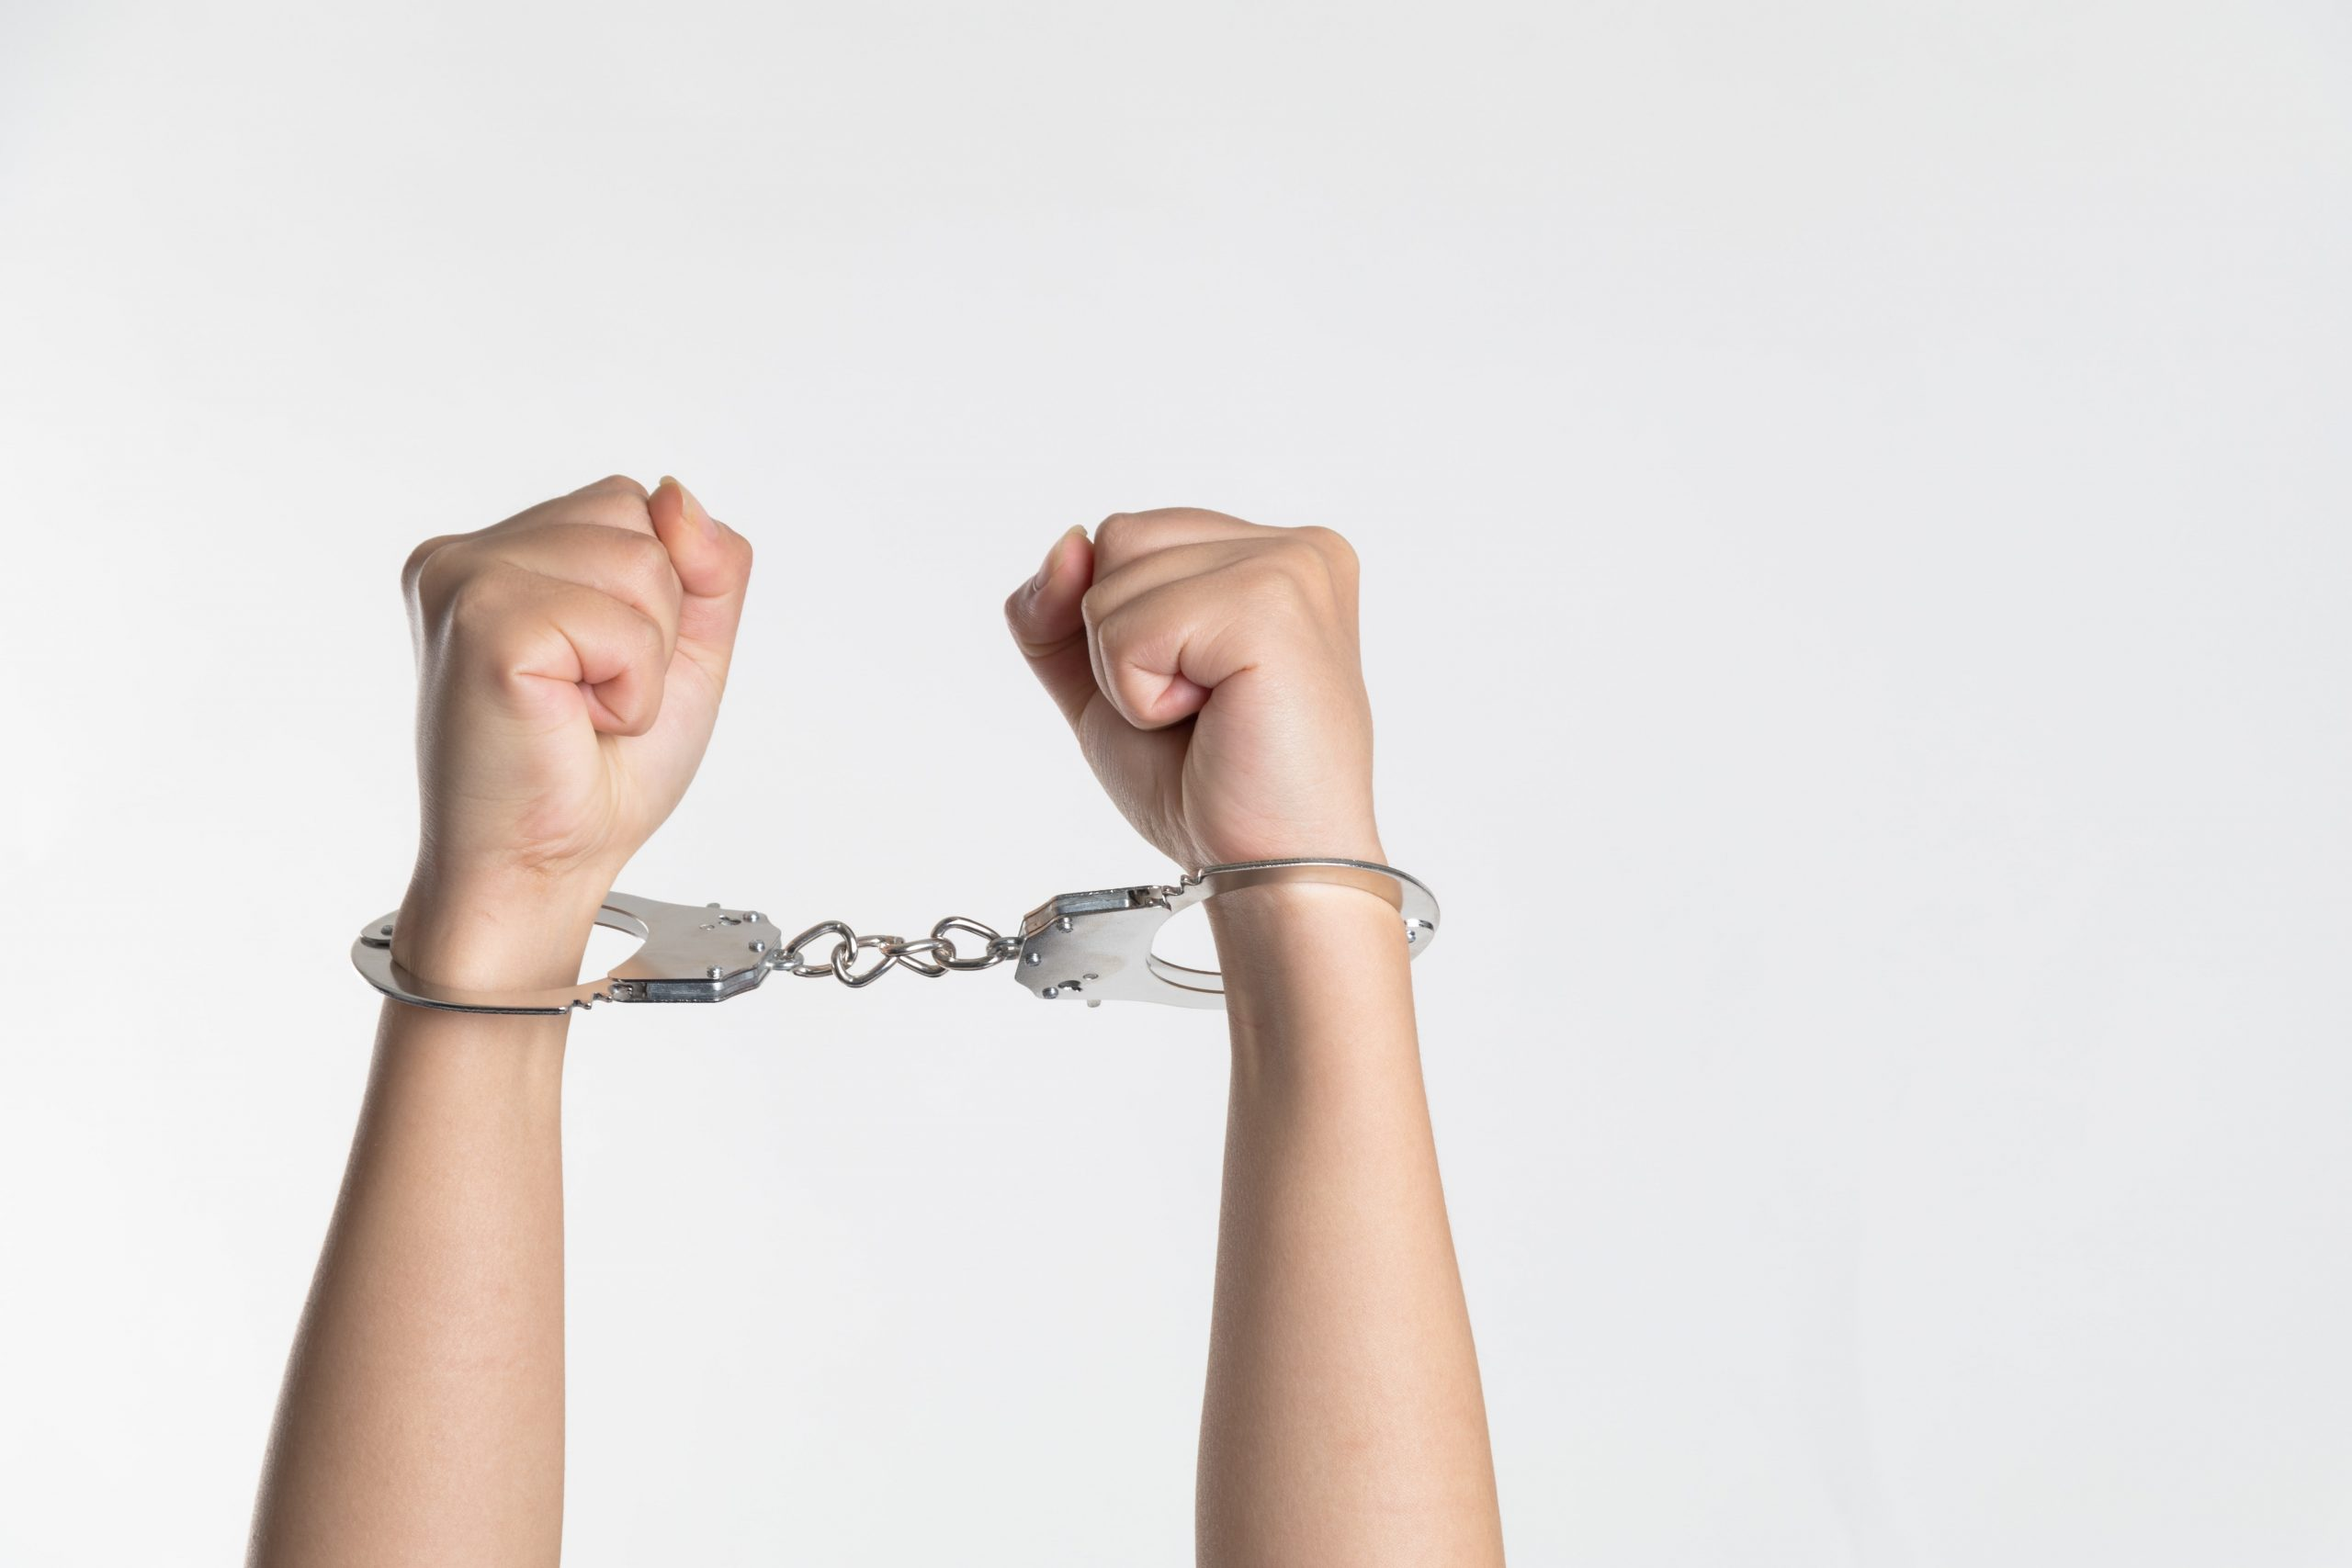 THE LEGAL UNCERTAINTIES IN THE SURGE OF ARRESTS FROM DISOBEYING THE MOVEMENT CONTROL ORDER